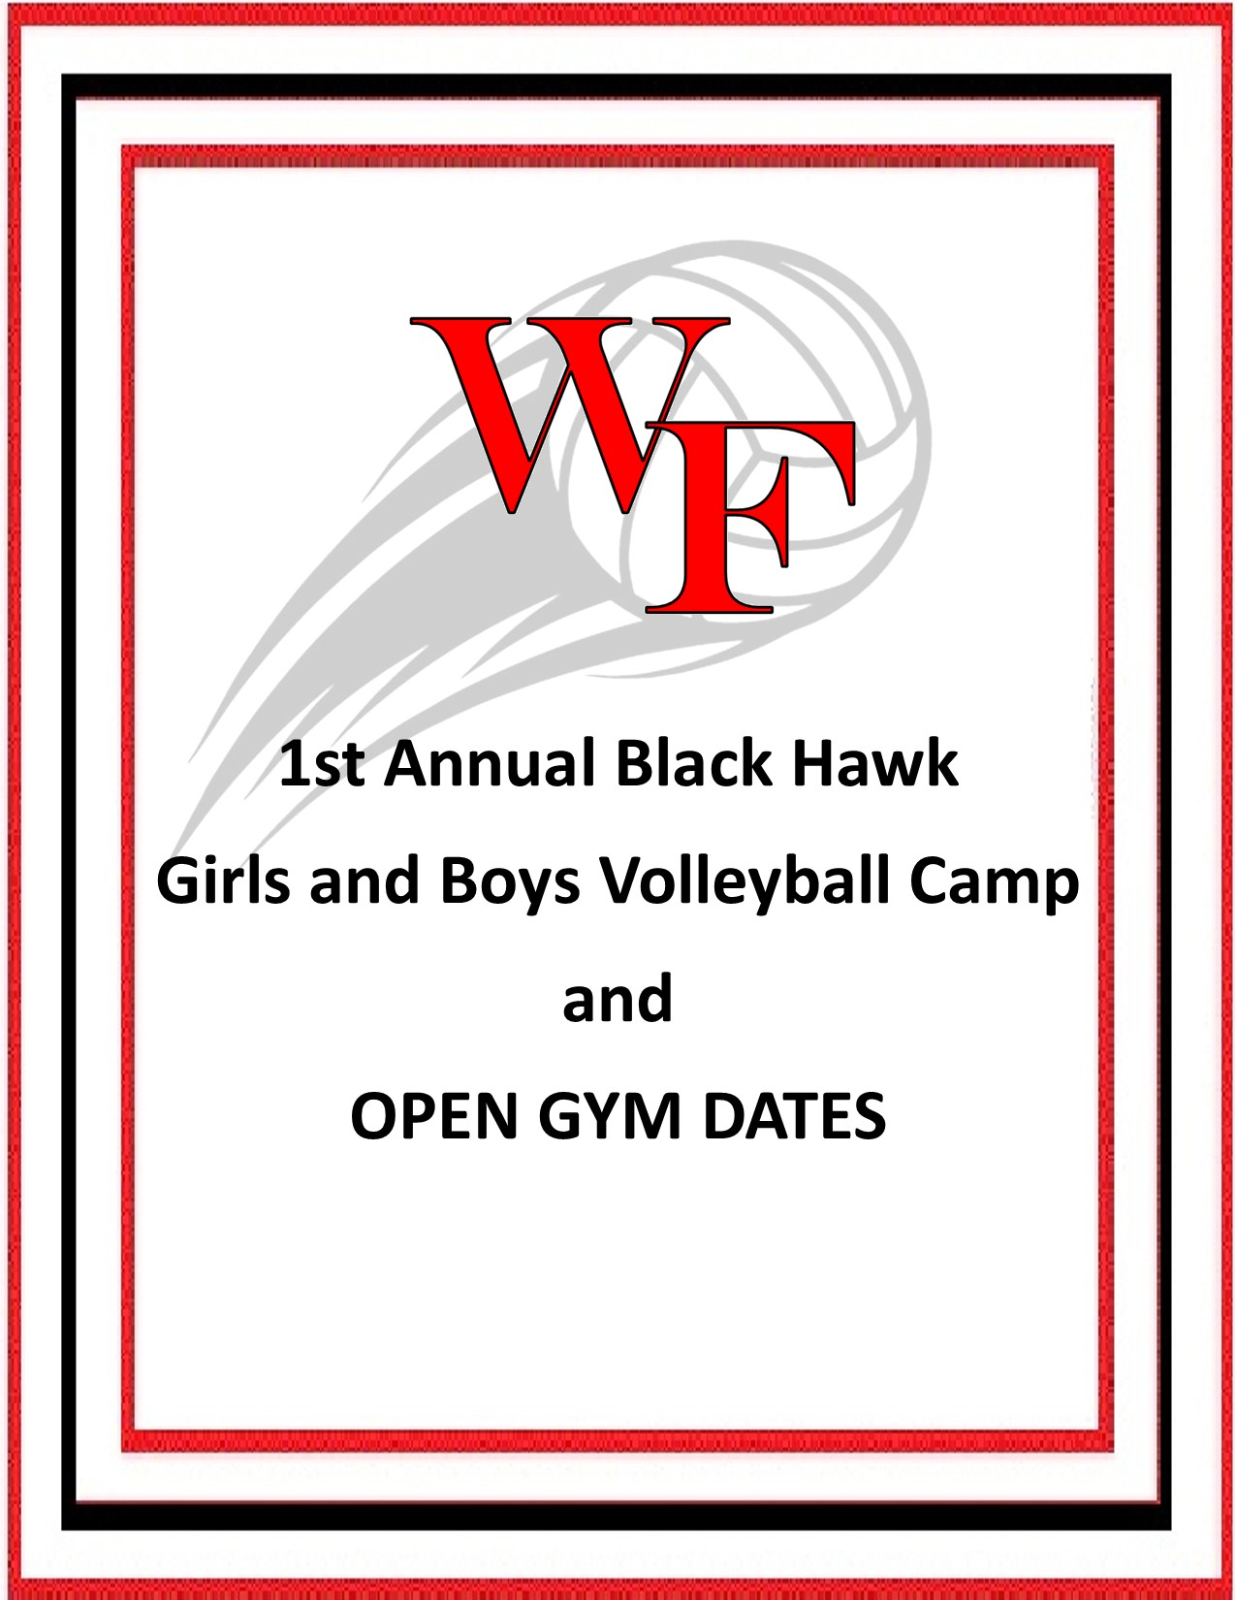 1st Annual Black Hawk Girls and Boys Volleyball Camp and OPEN GYM DATES